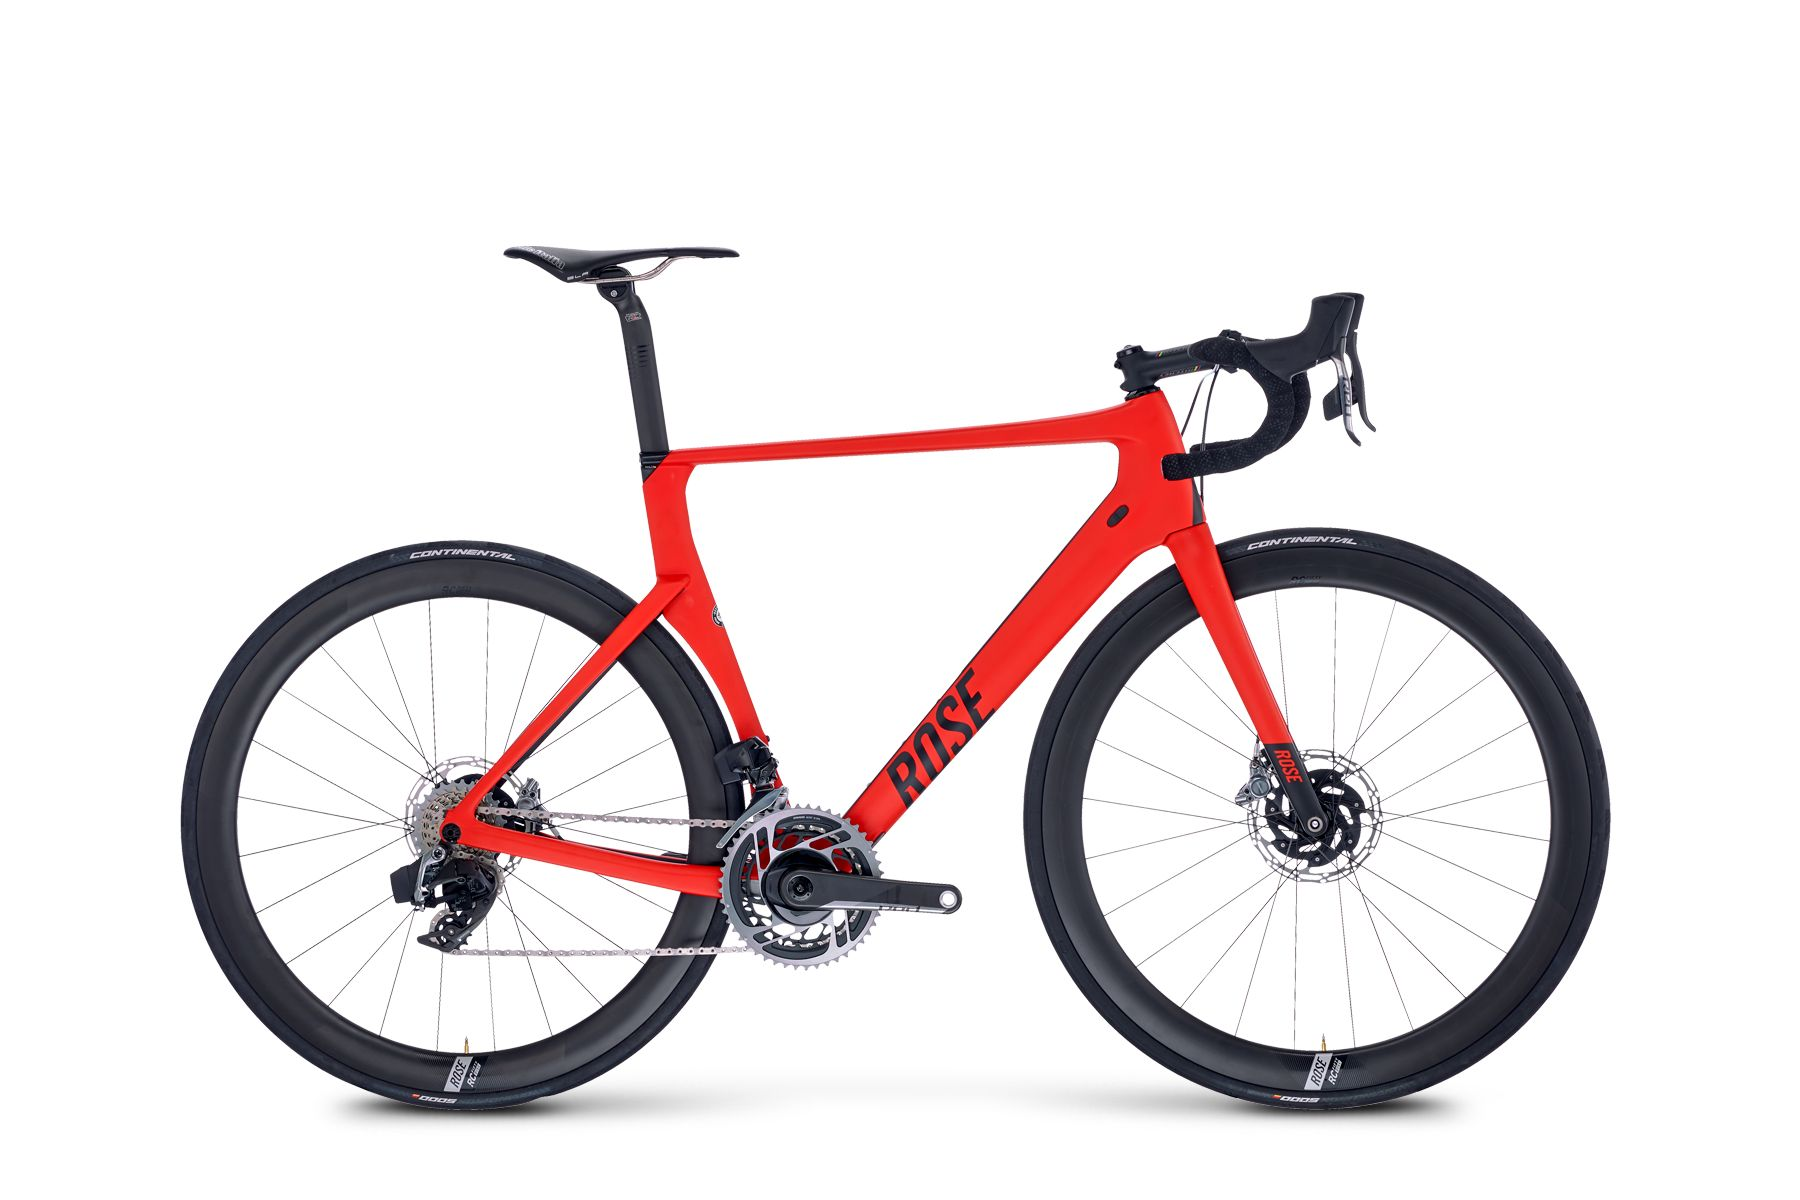 XEON CW DISC SRAM RED eTap AXS Showroom Bike Size: 57cm